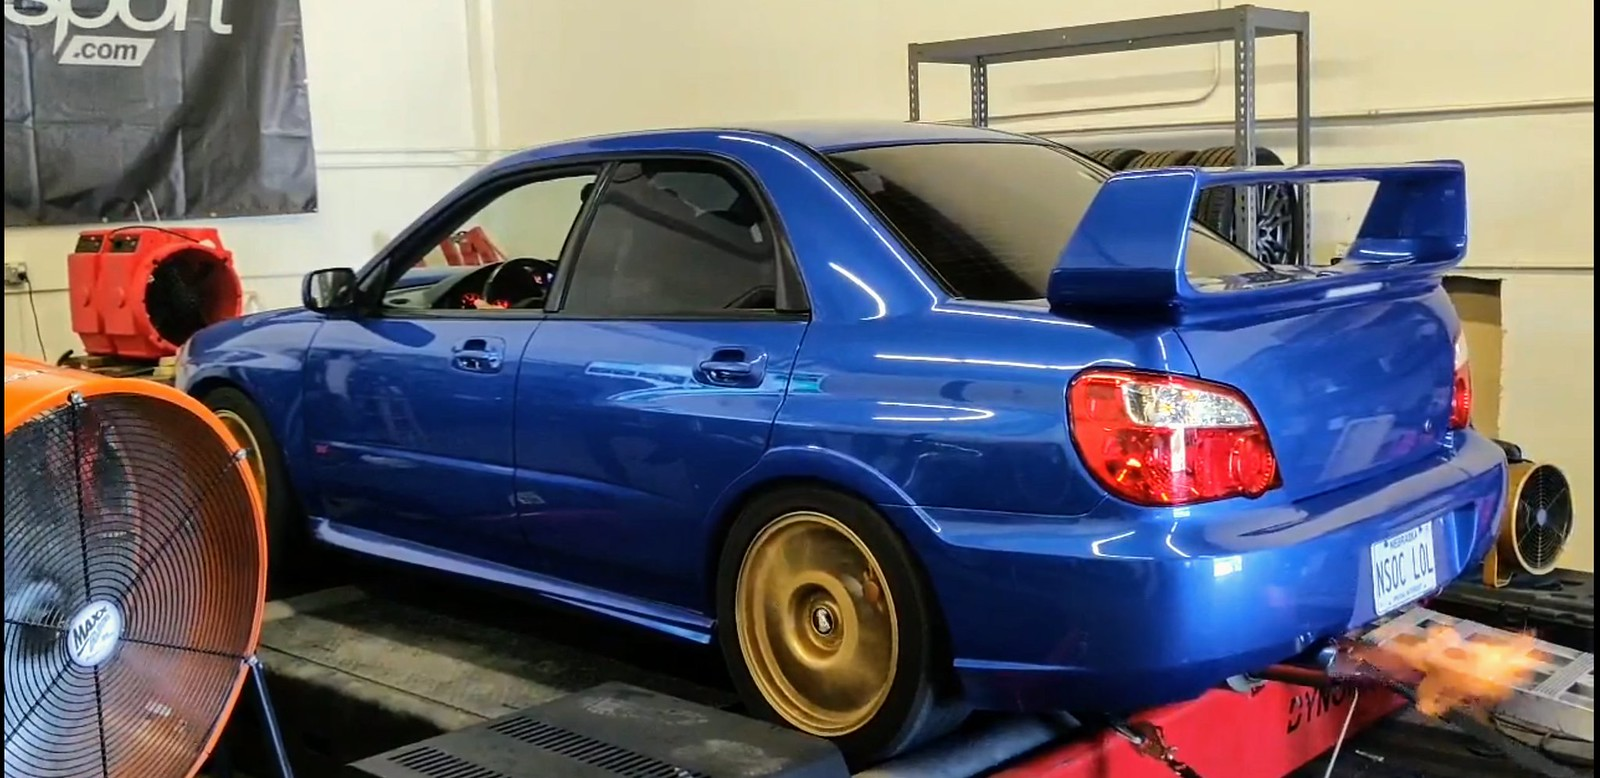 yamahaSHO's Street Car - Detailed the car...  Might be pending sale.-sti-dyno-flames-jpg